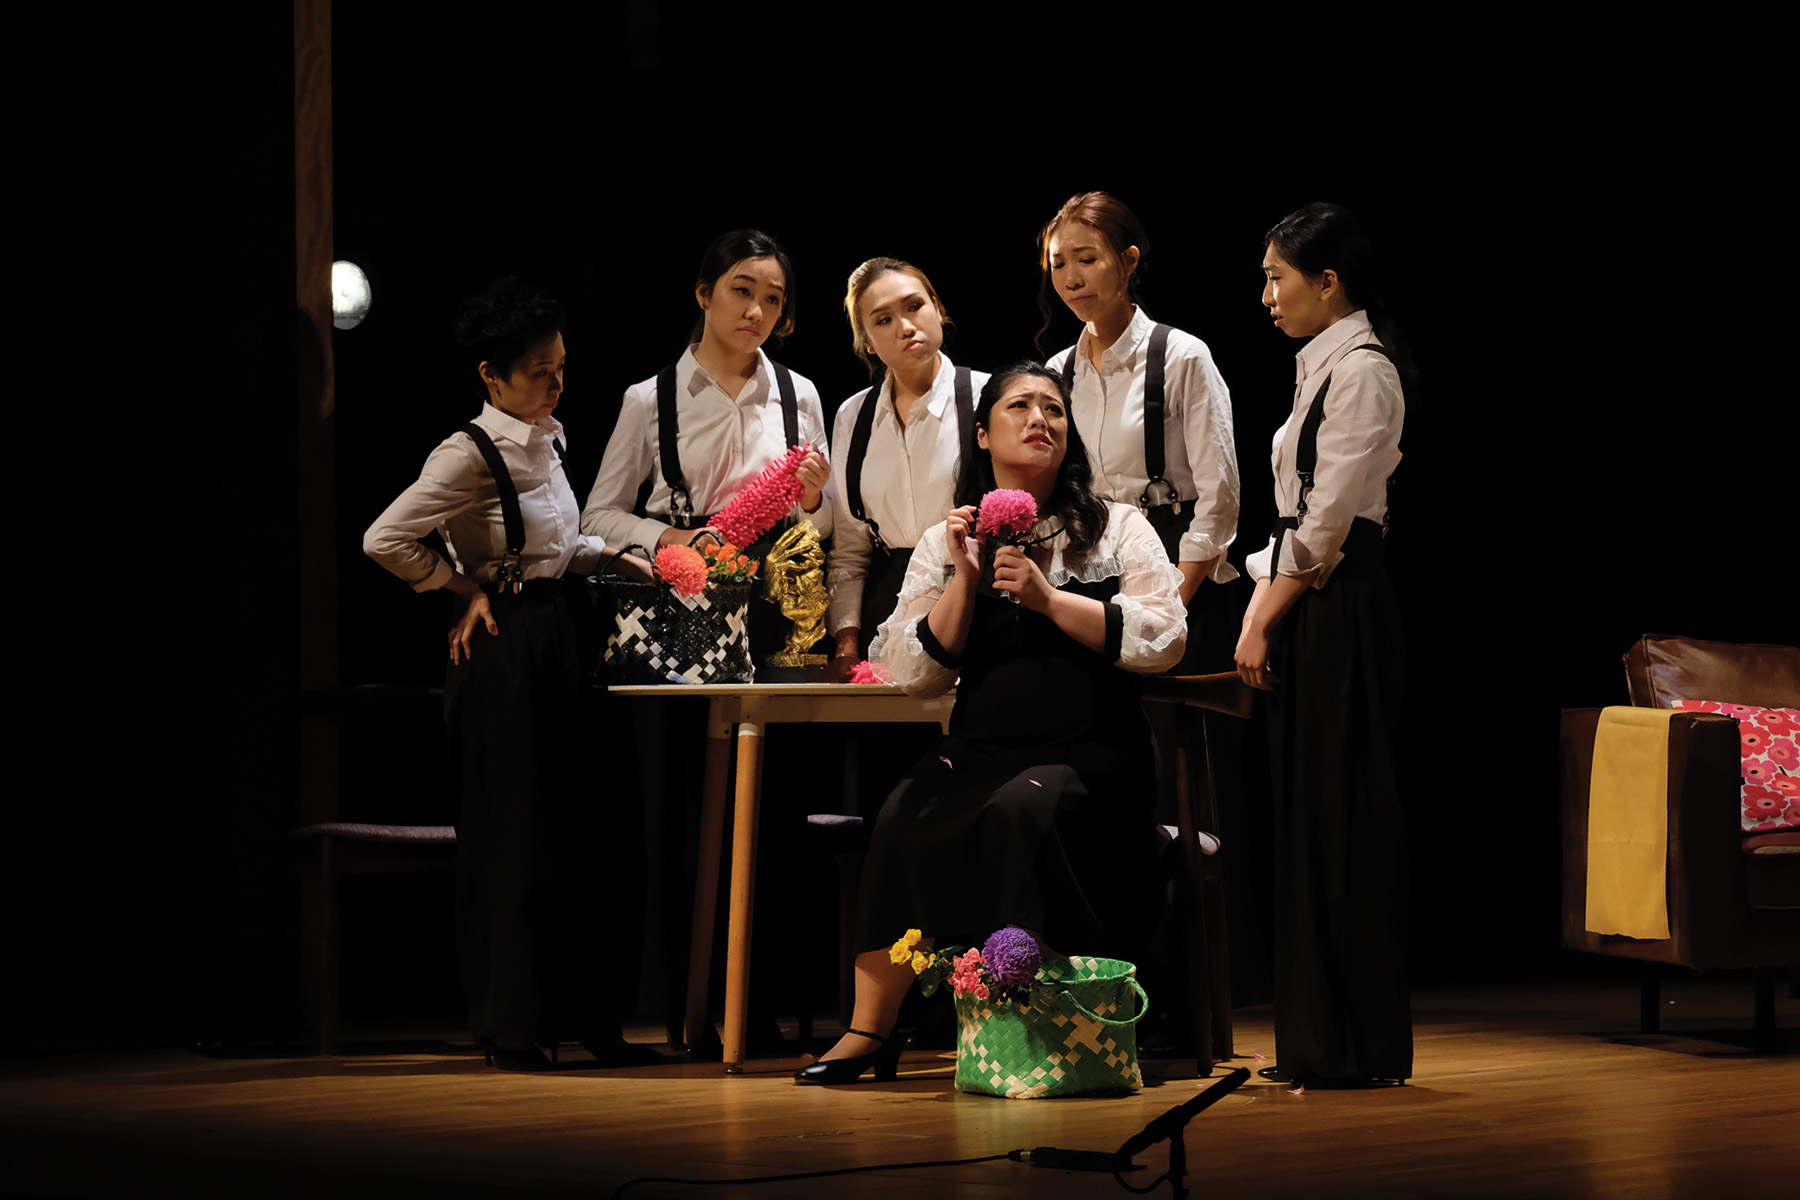 """Bel Canto Singers: """"My Beloved"""" – by Giacomo Puccini: Liù telling the girls how she misses Luigi. Photo credit: © David Quah"""